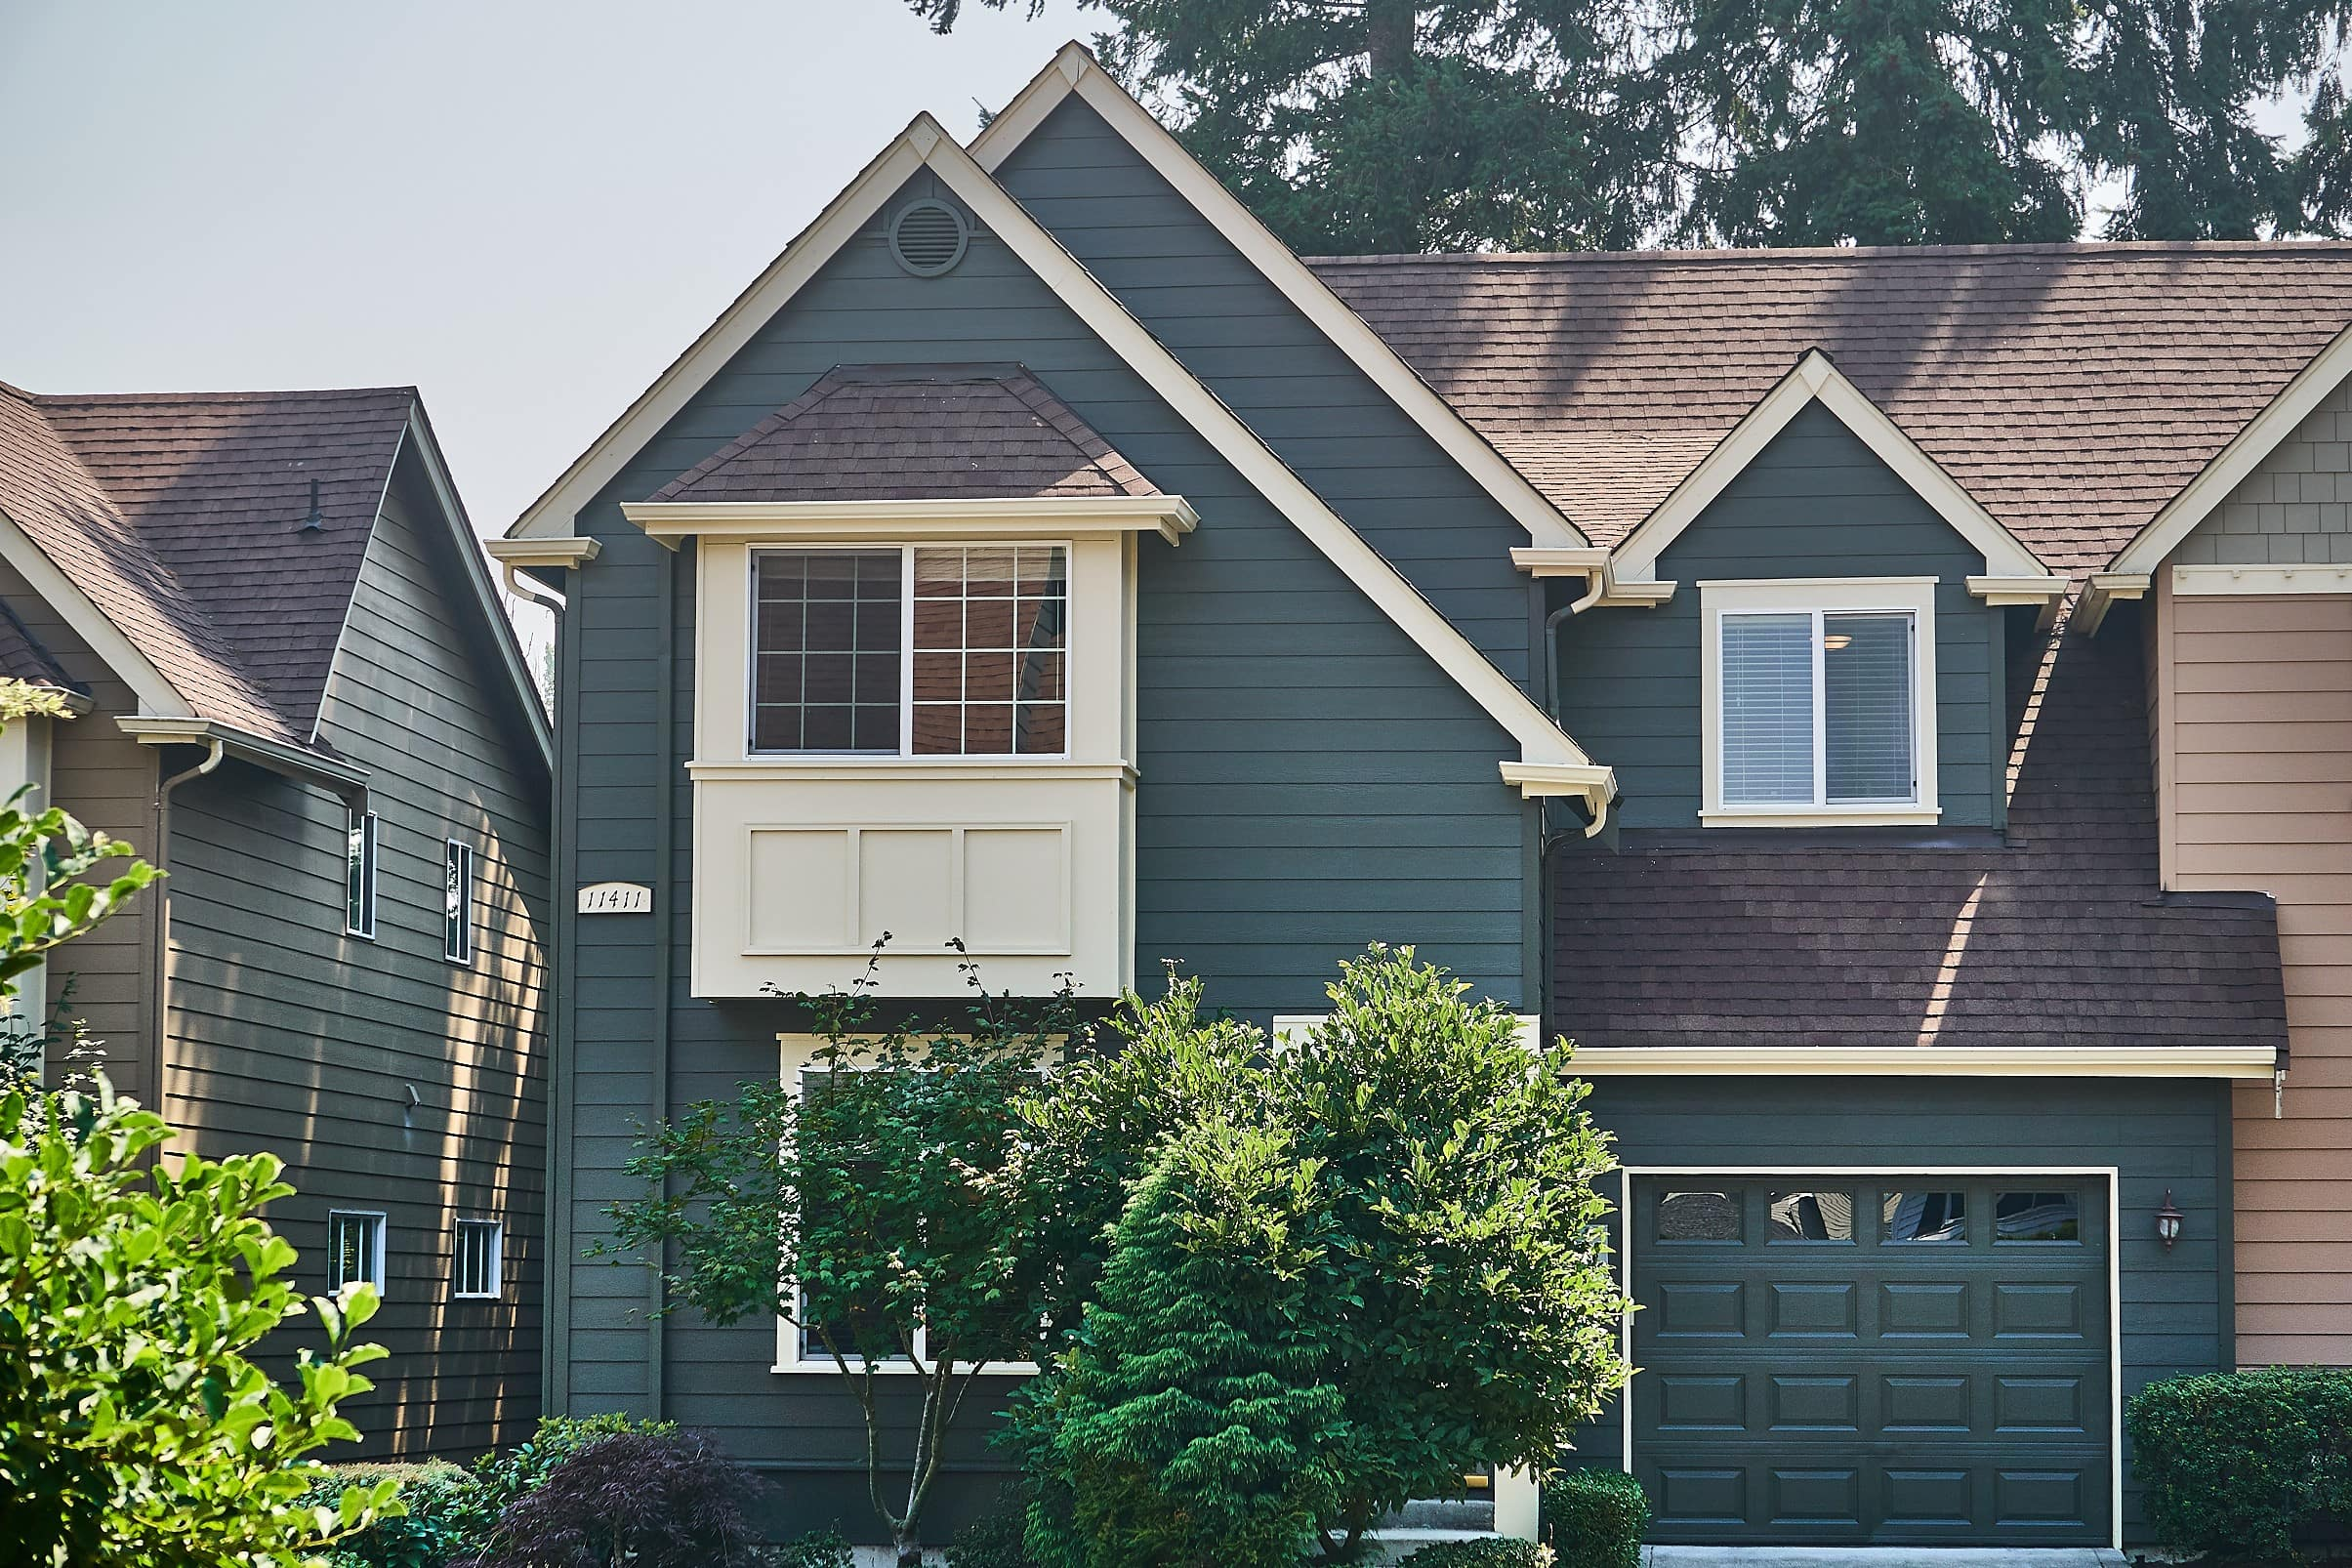 001_Front of Home.jpg